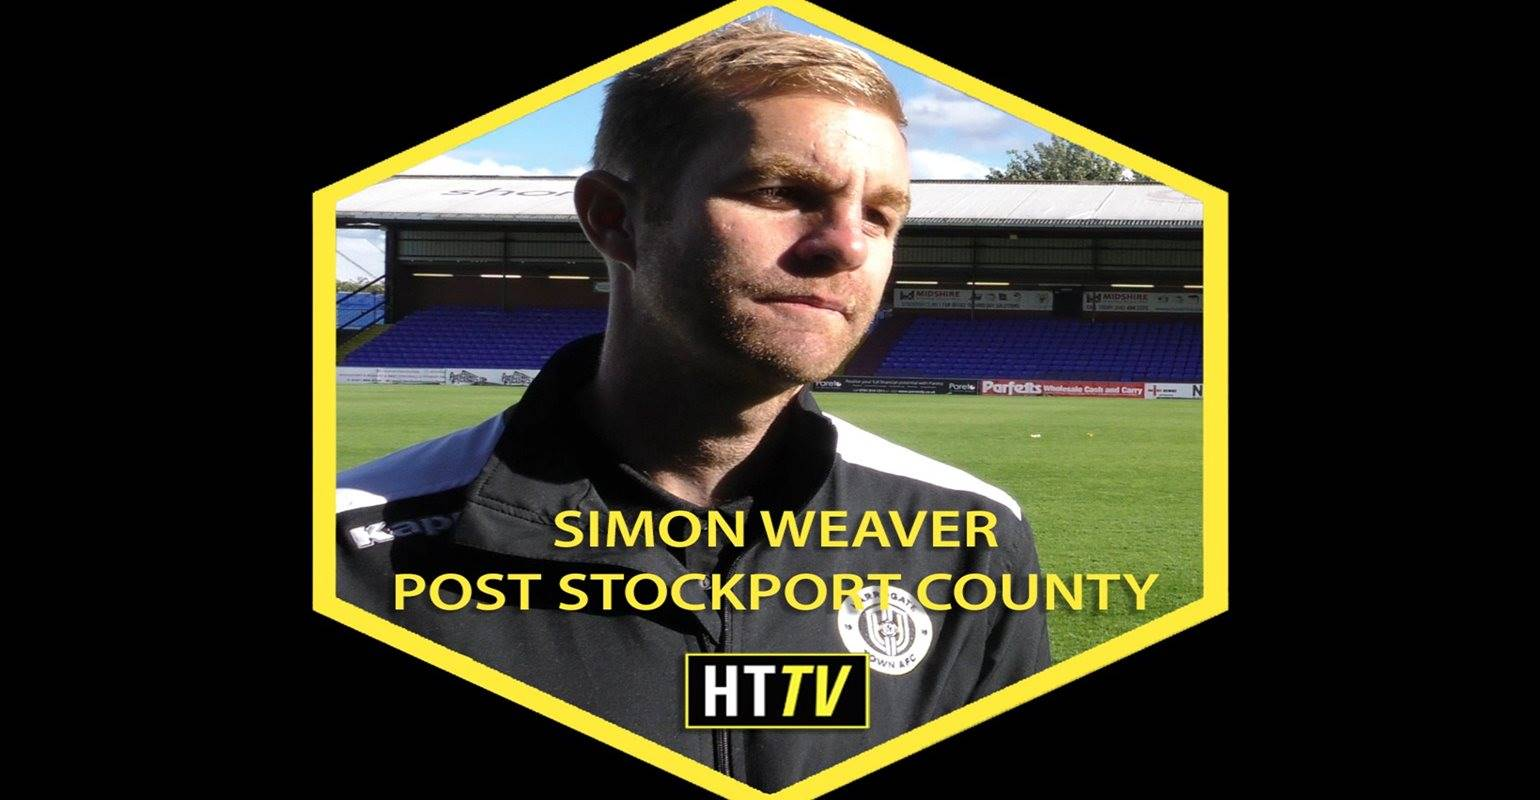 HTTV | Simon Weaver Post Stockport County